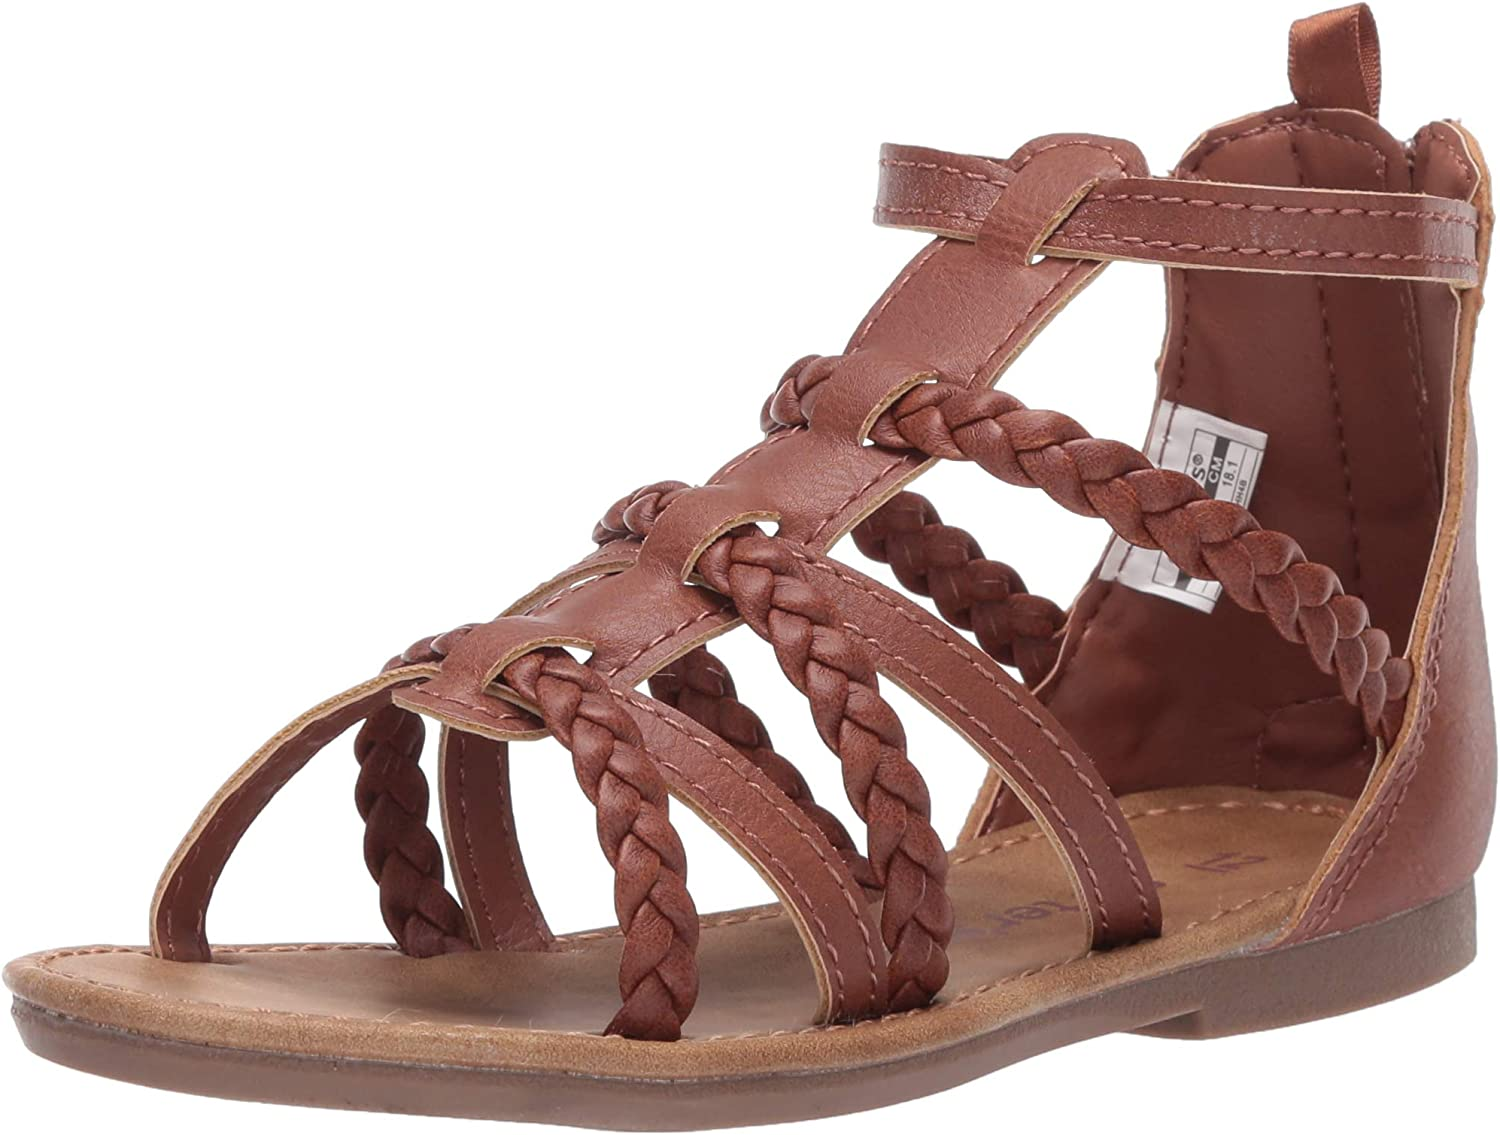 Carter's Unisex-Child Eliana Gladiator-Style OFFicial low-pricing mail order Zipper Sandal